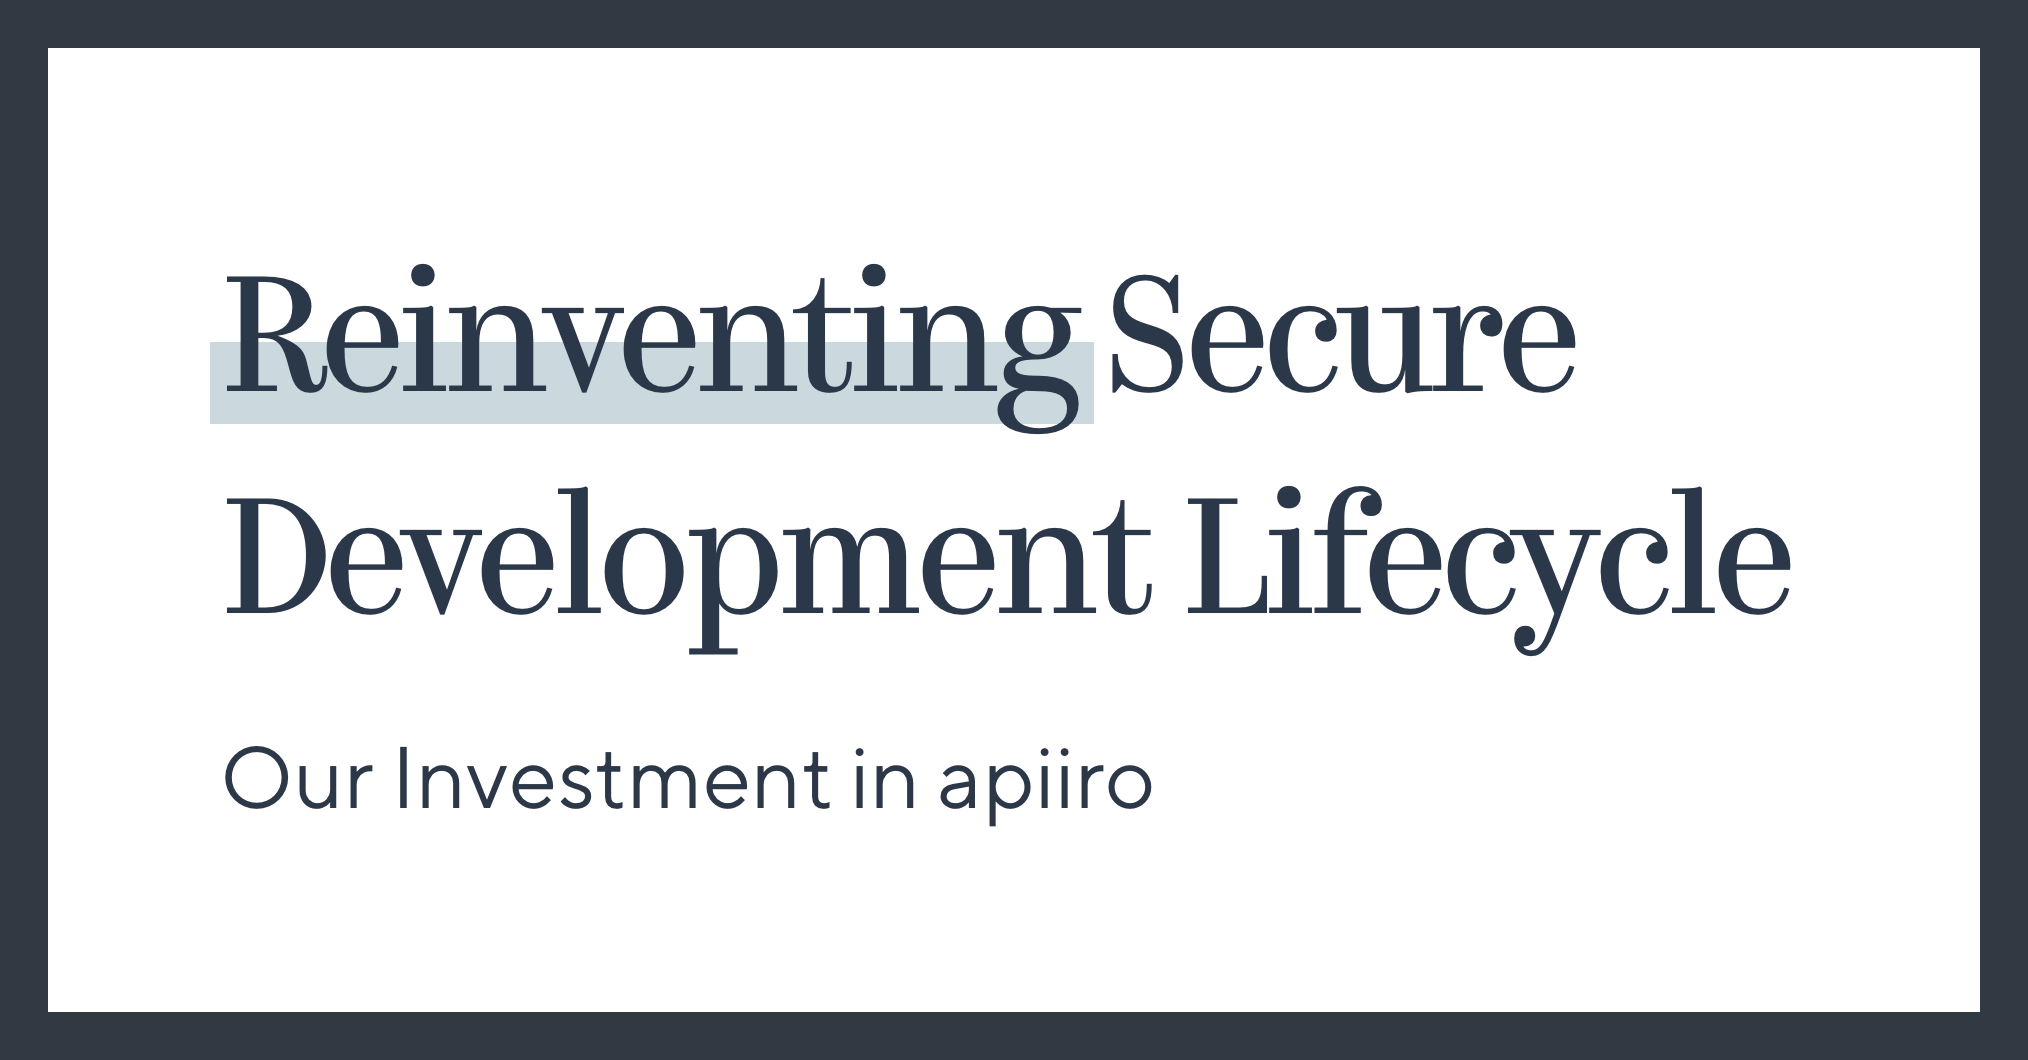 Reinventing Secure Development Lifecycle